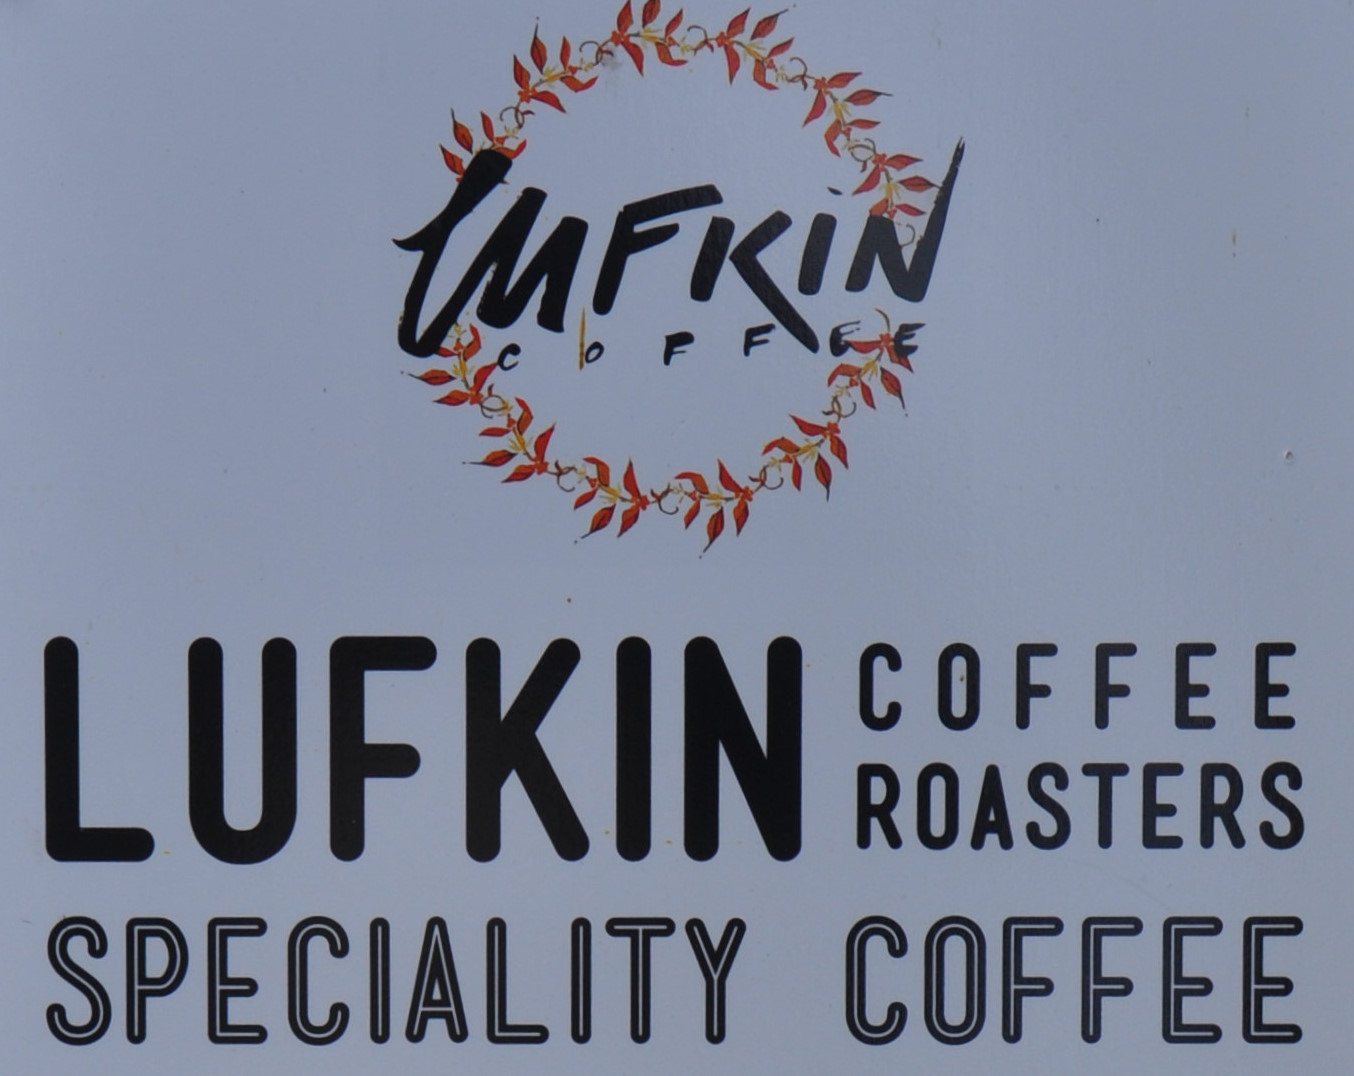 Detail from the top of the sign outside Lufkin Coffee.